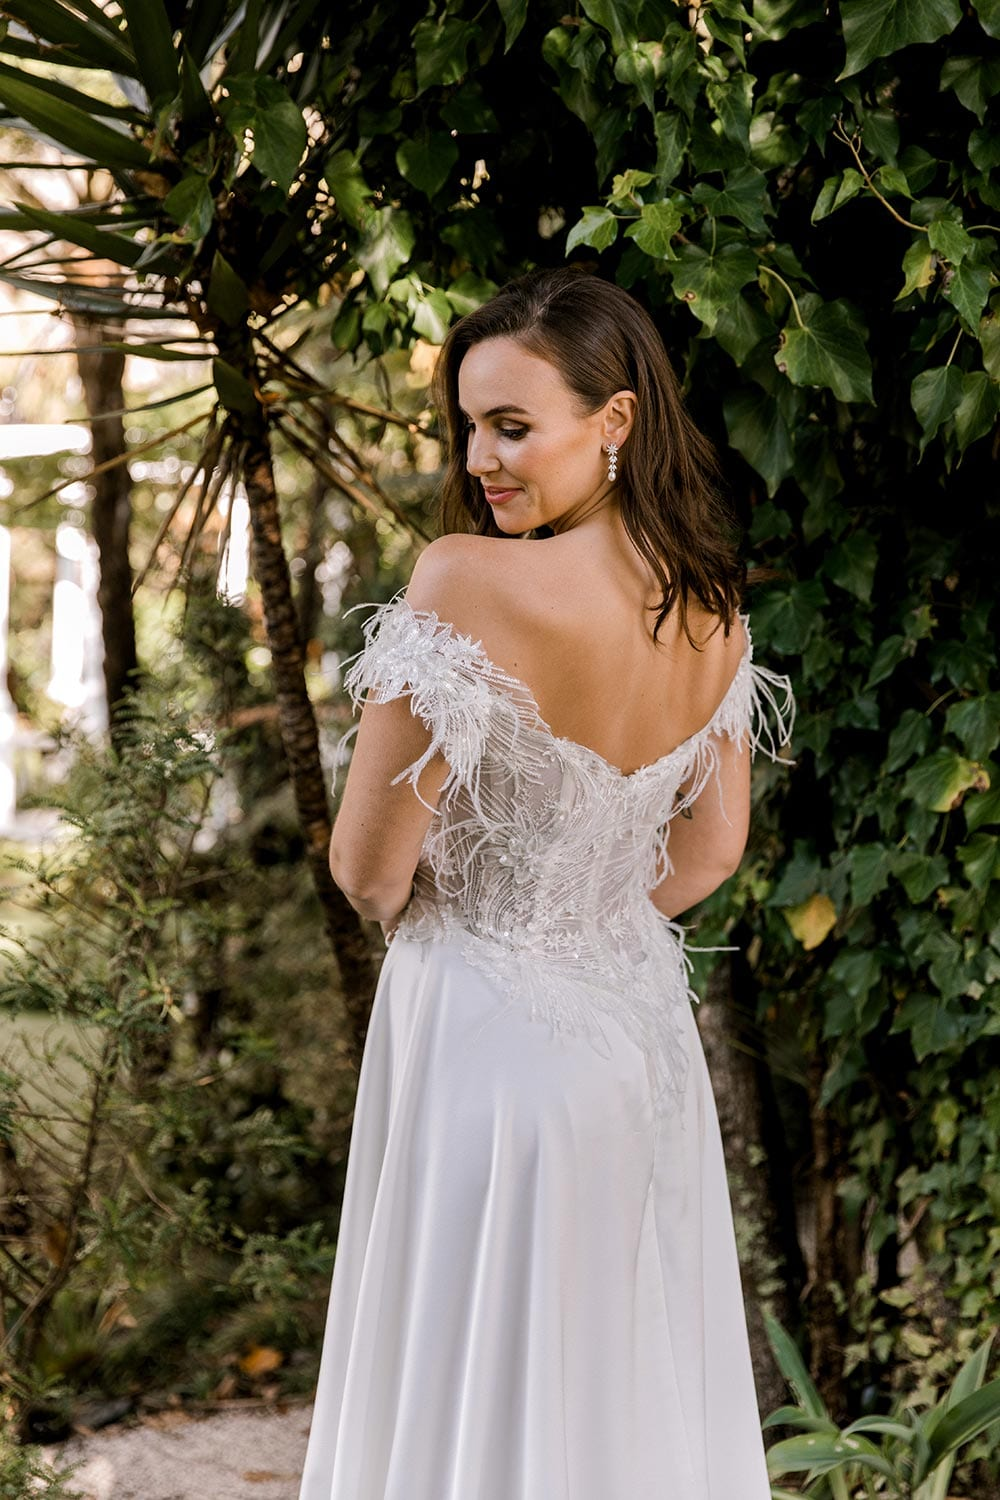 Genevive Wedding Dress from Vinka Design. The soft off-the-shoulder sleeves & semi-sheer structured bodice with hand-appliqued lace and a soft satin skirt make this a romantic & dreamy wedding dress. Close up detail of back detail of dress with train, photographed at Tui Hills.